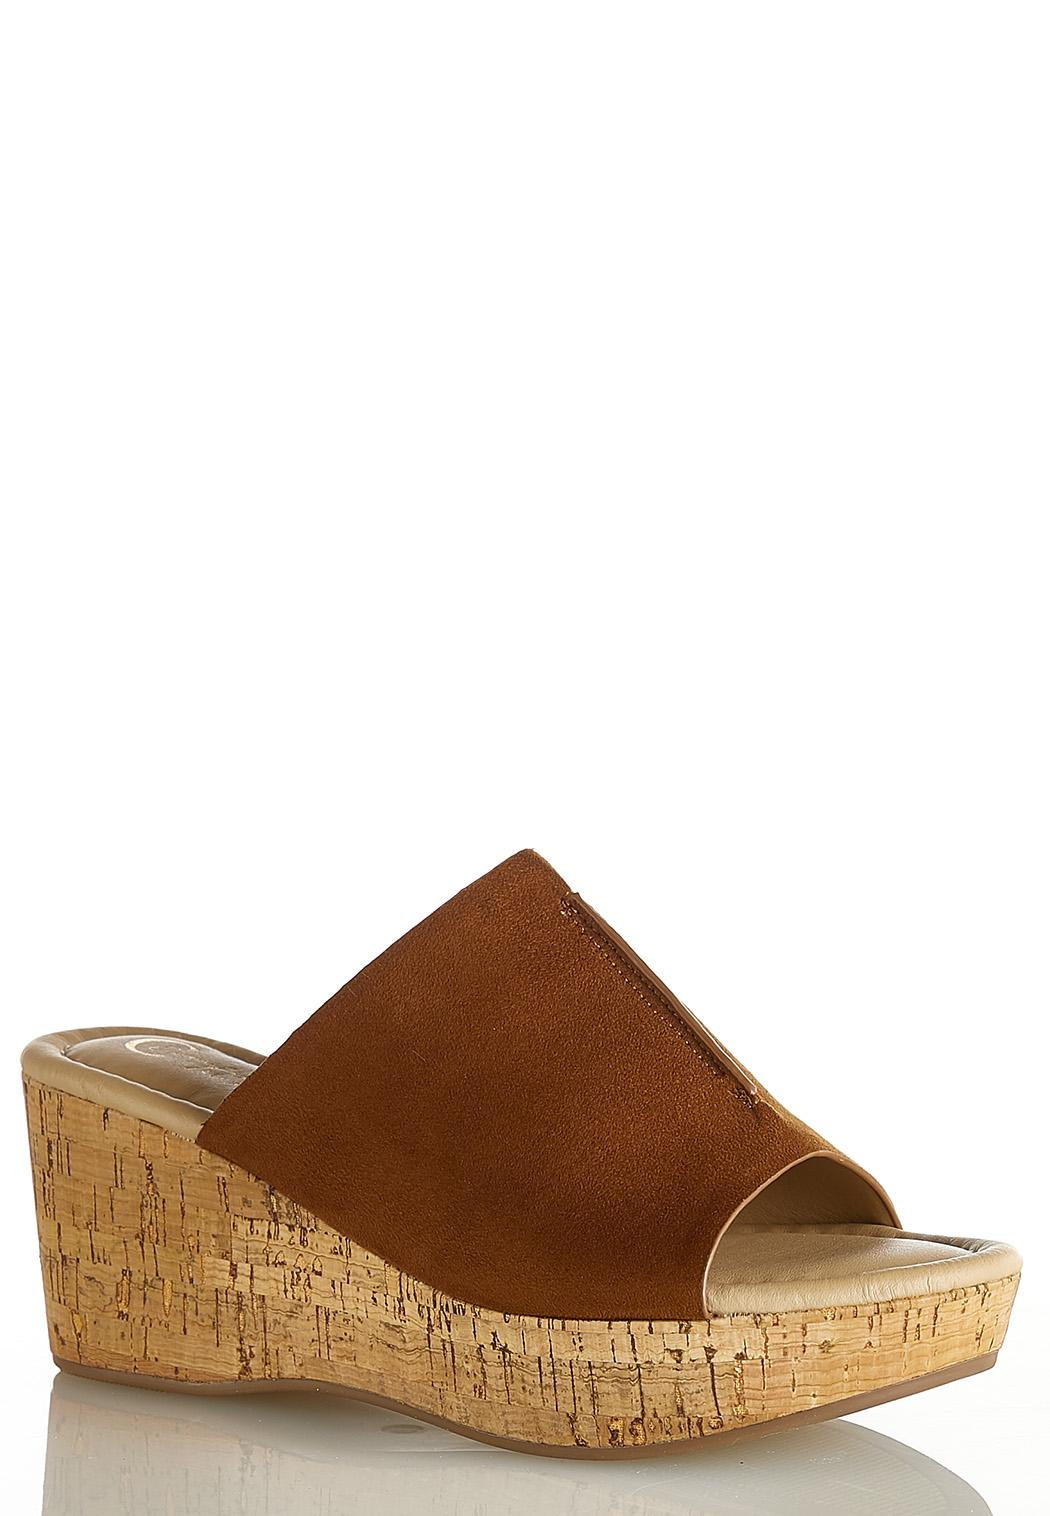 Cork Wedge Slide Sandals